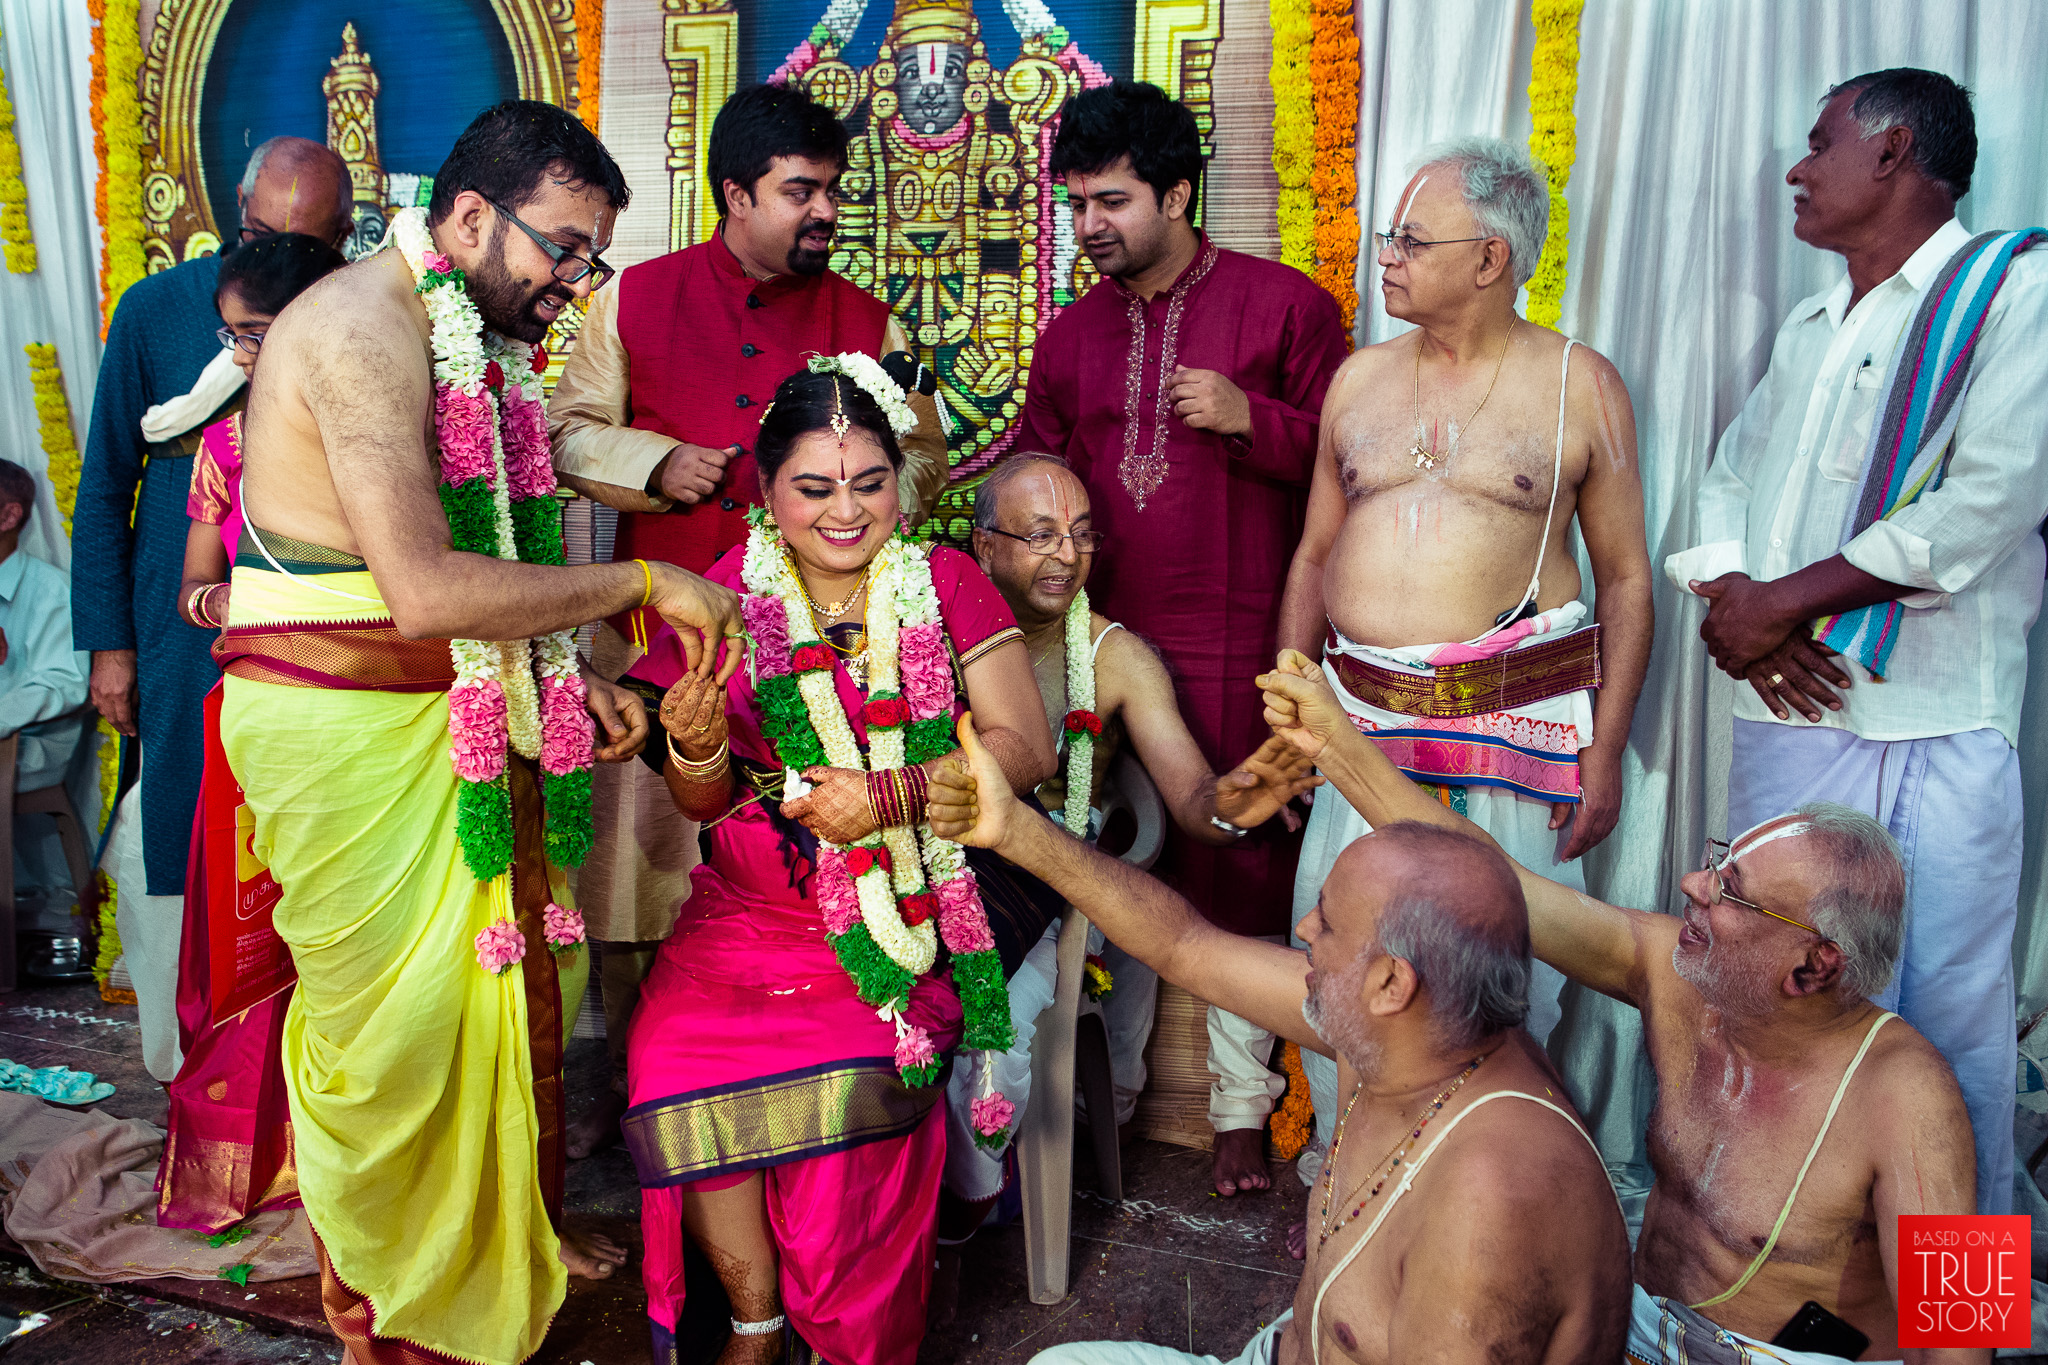 tambrahm-candid-wedding-photographer-bangalore-0043.jpg